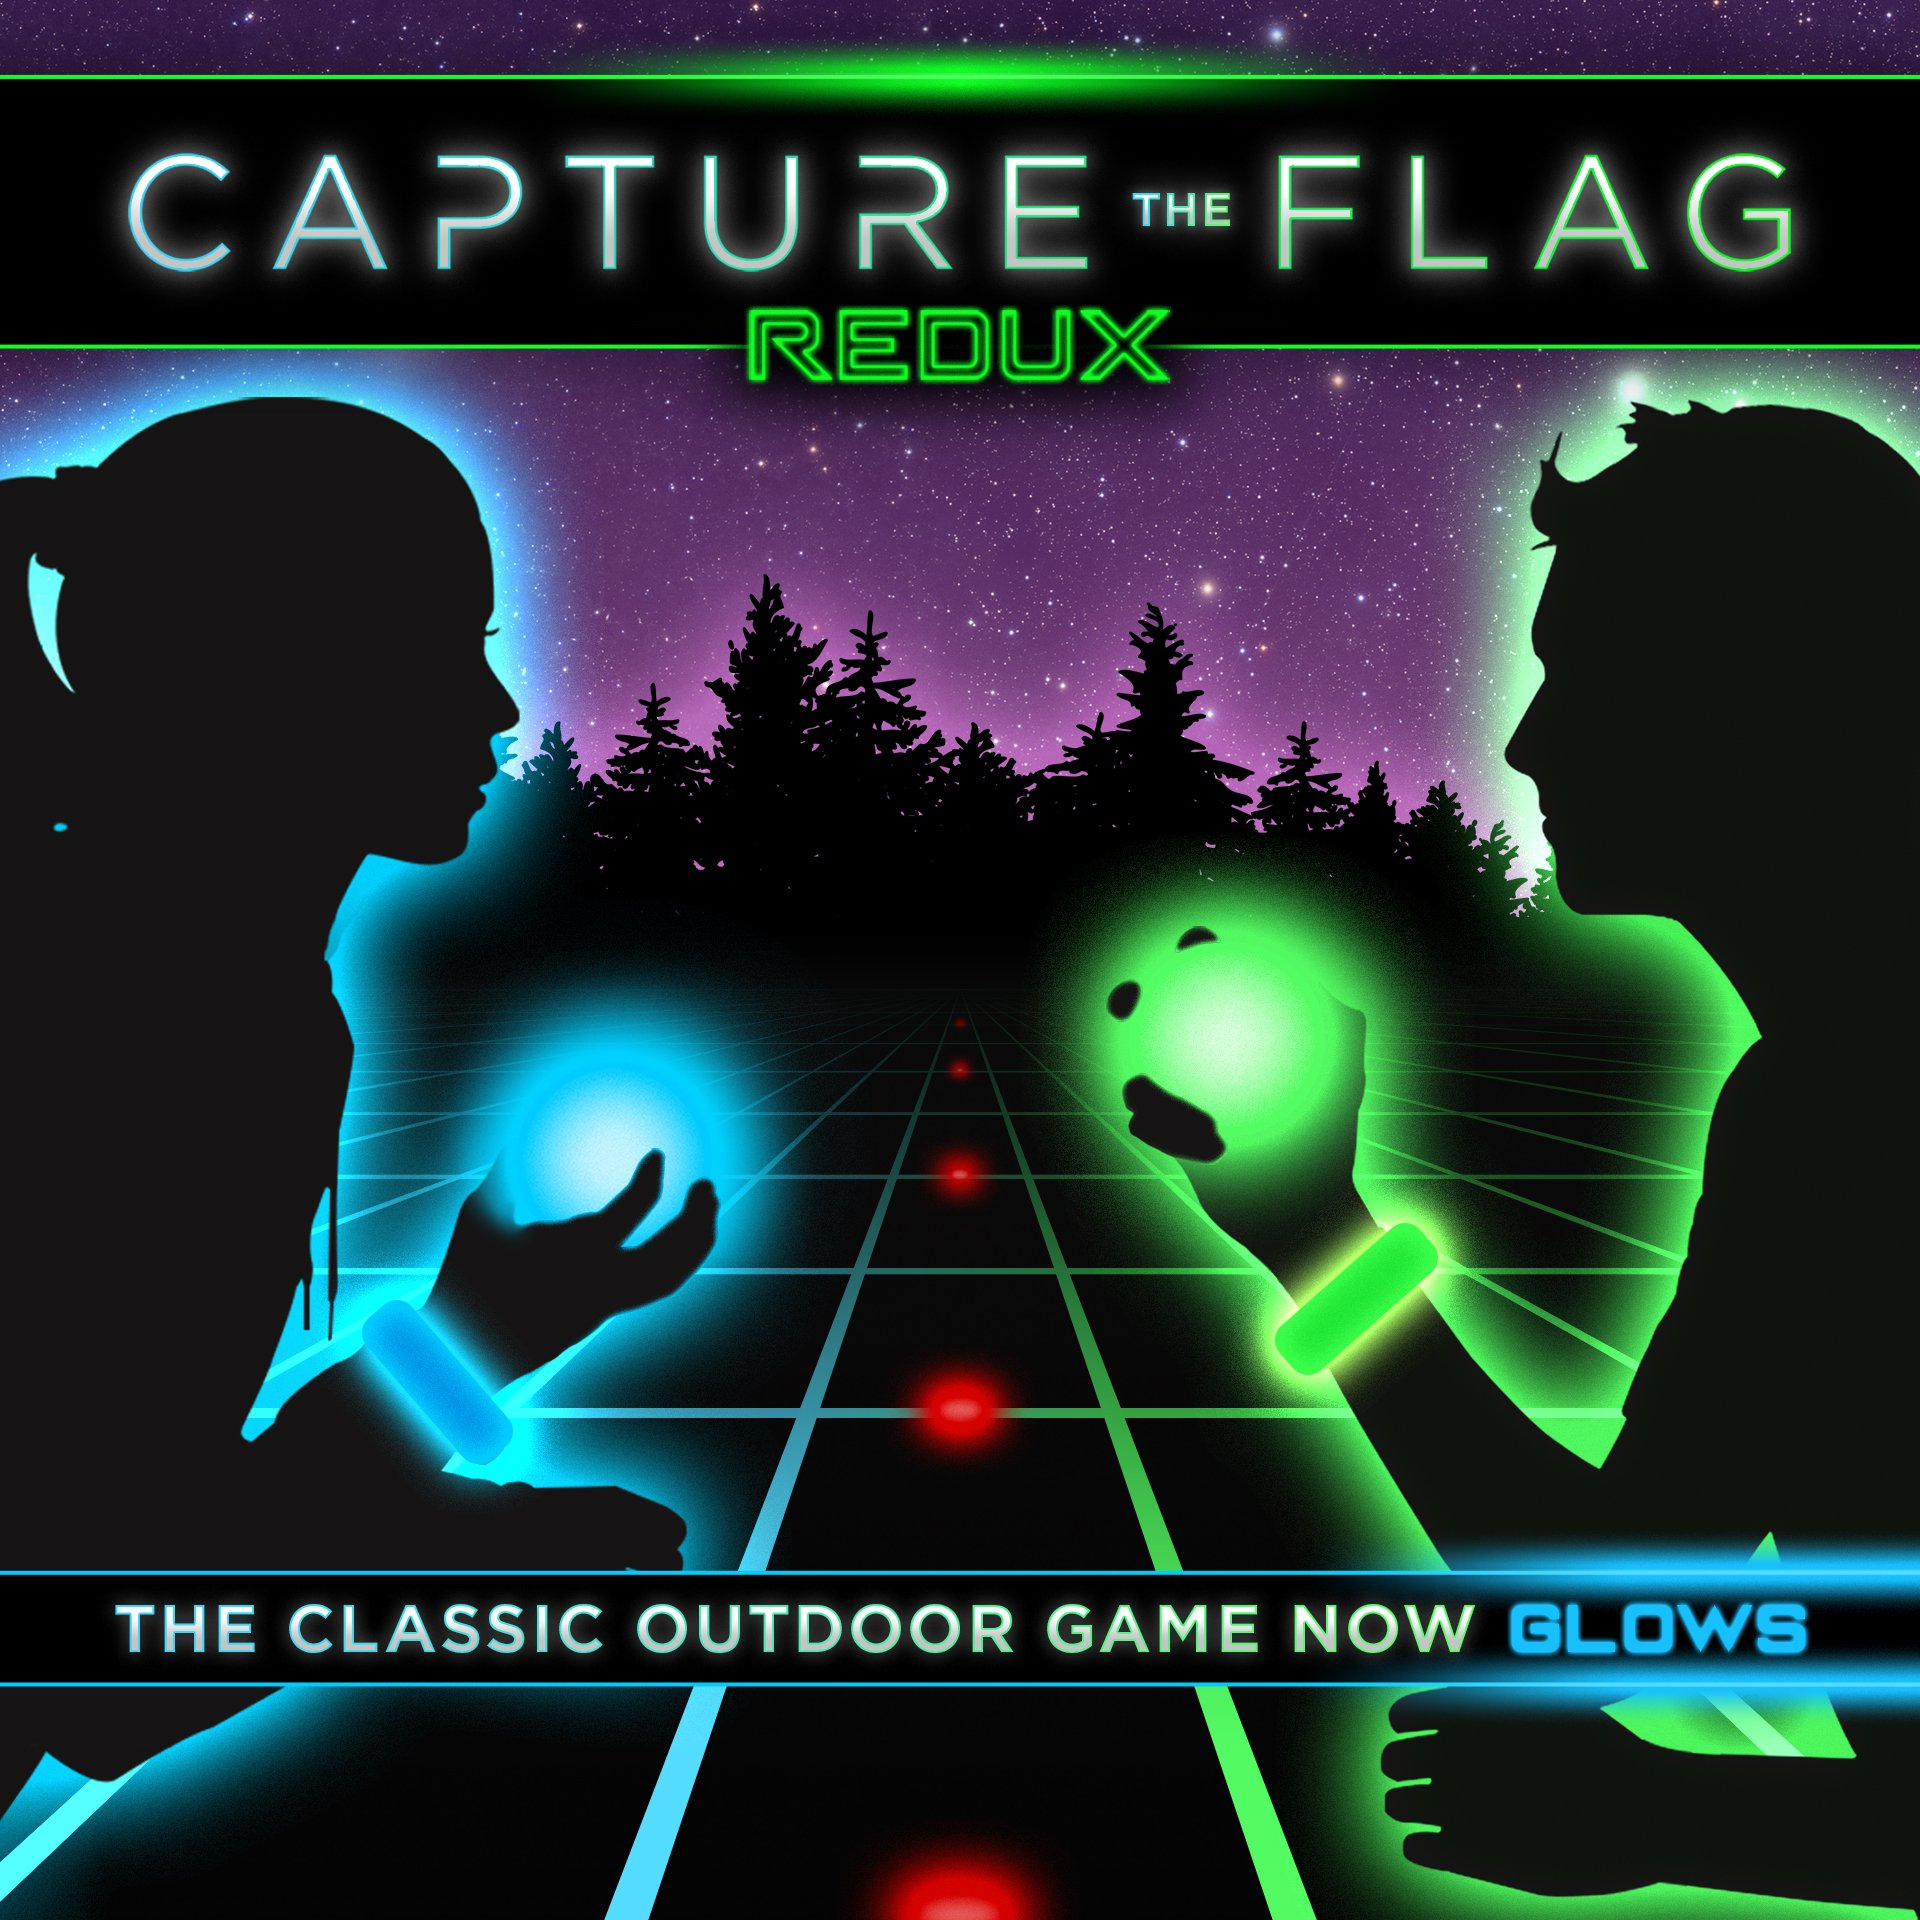 Capture the Flag REDUX a Nighttime Outdoor Game for Youth Groups, Birthdays and Team Building - Get Ready for a Glow in the Dark Adventure